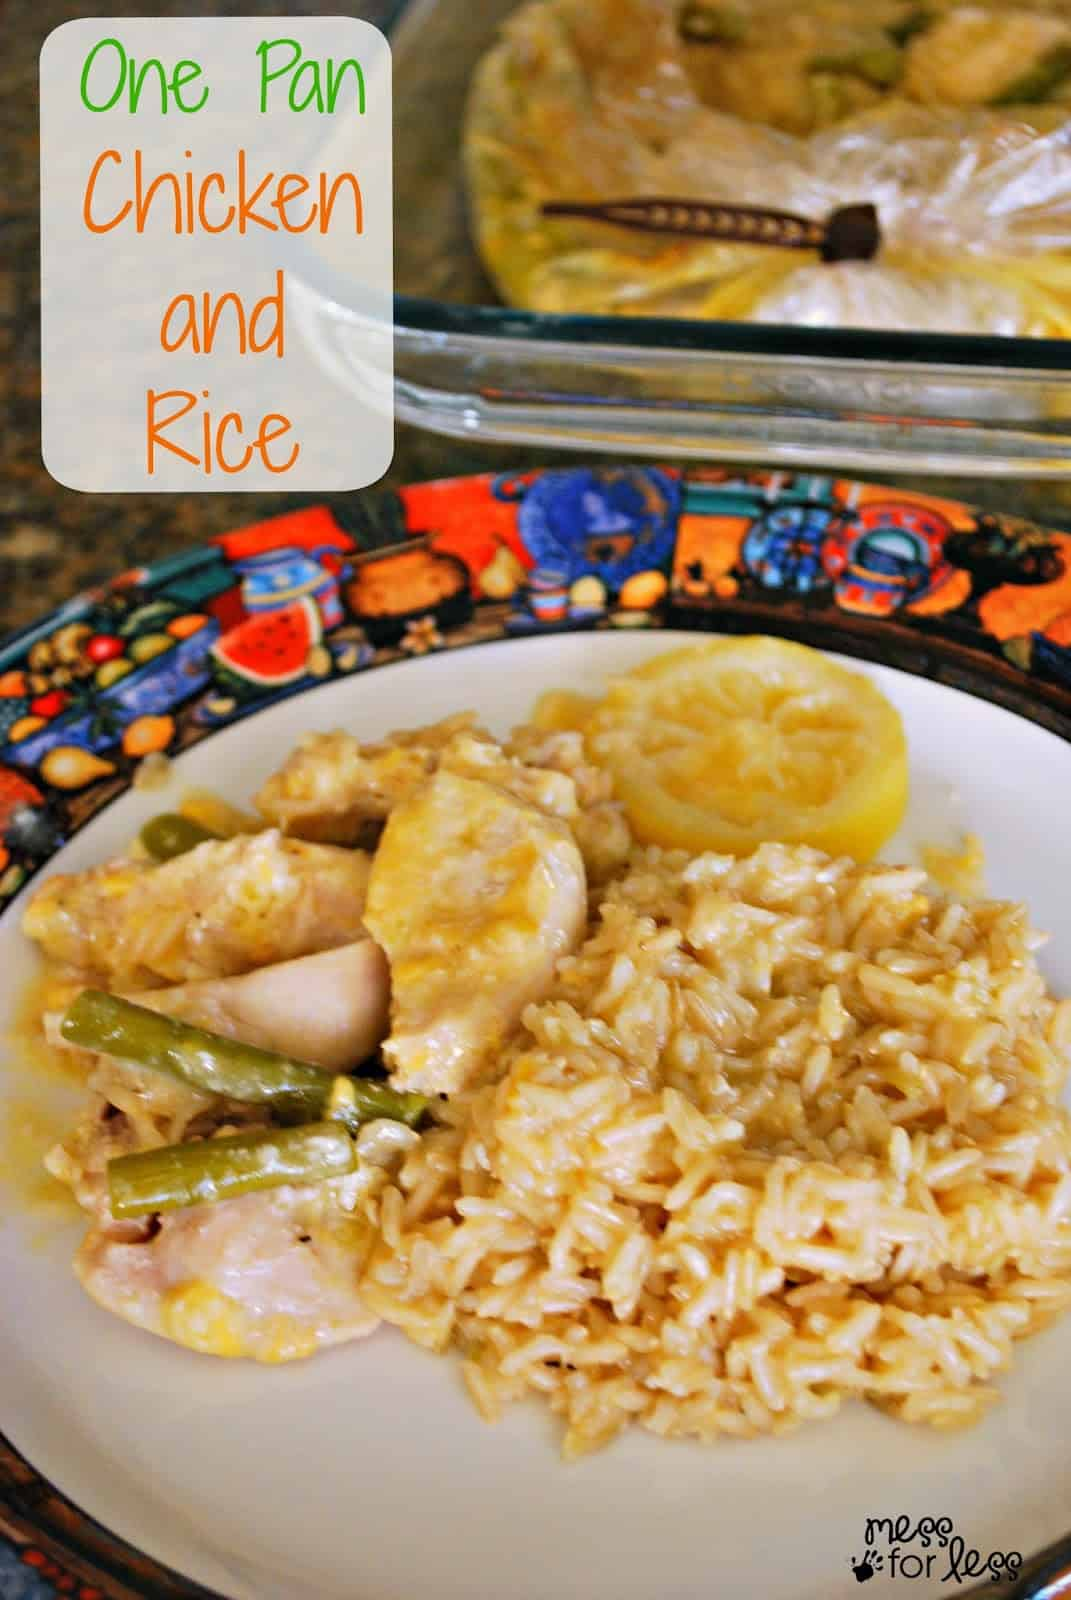 One Pan Chicken and Rice Dinner - Mess for Less